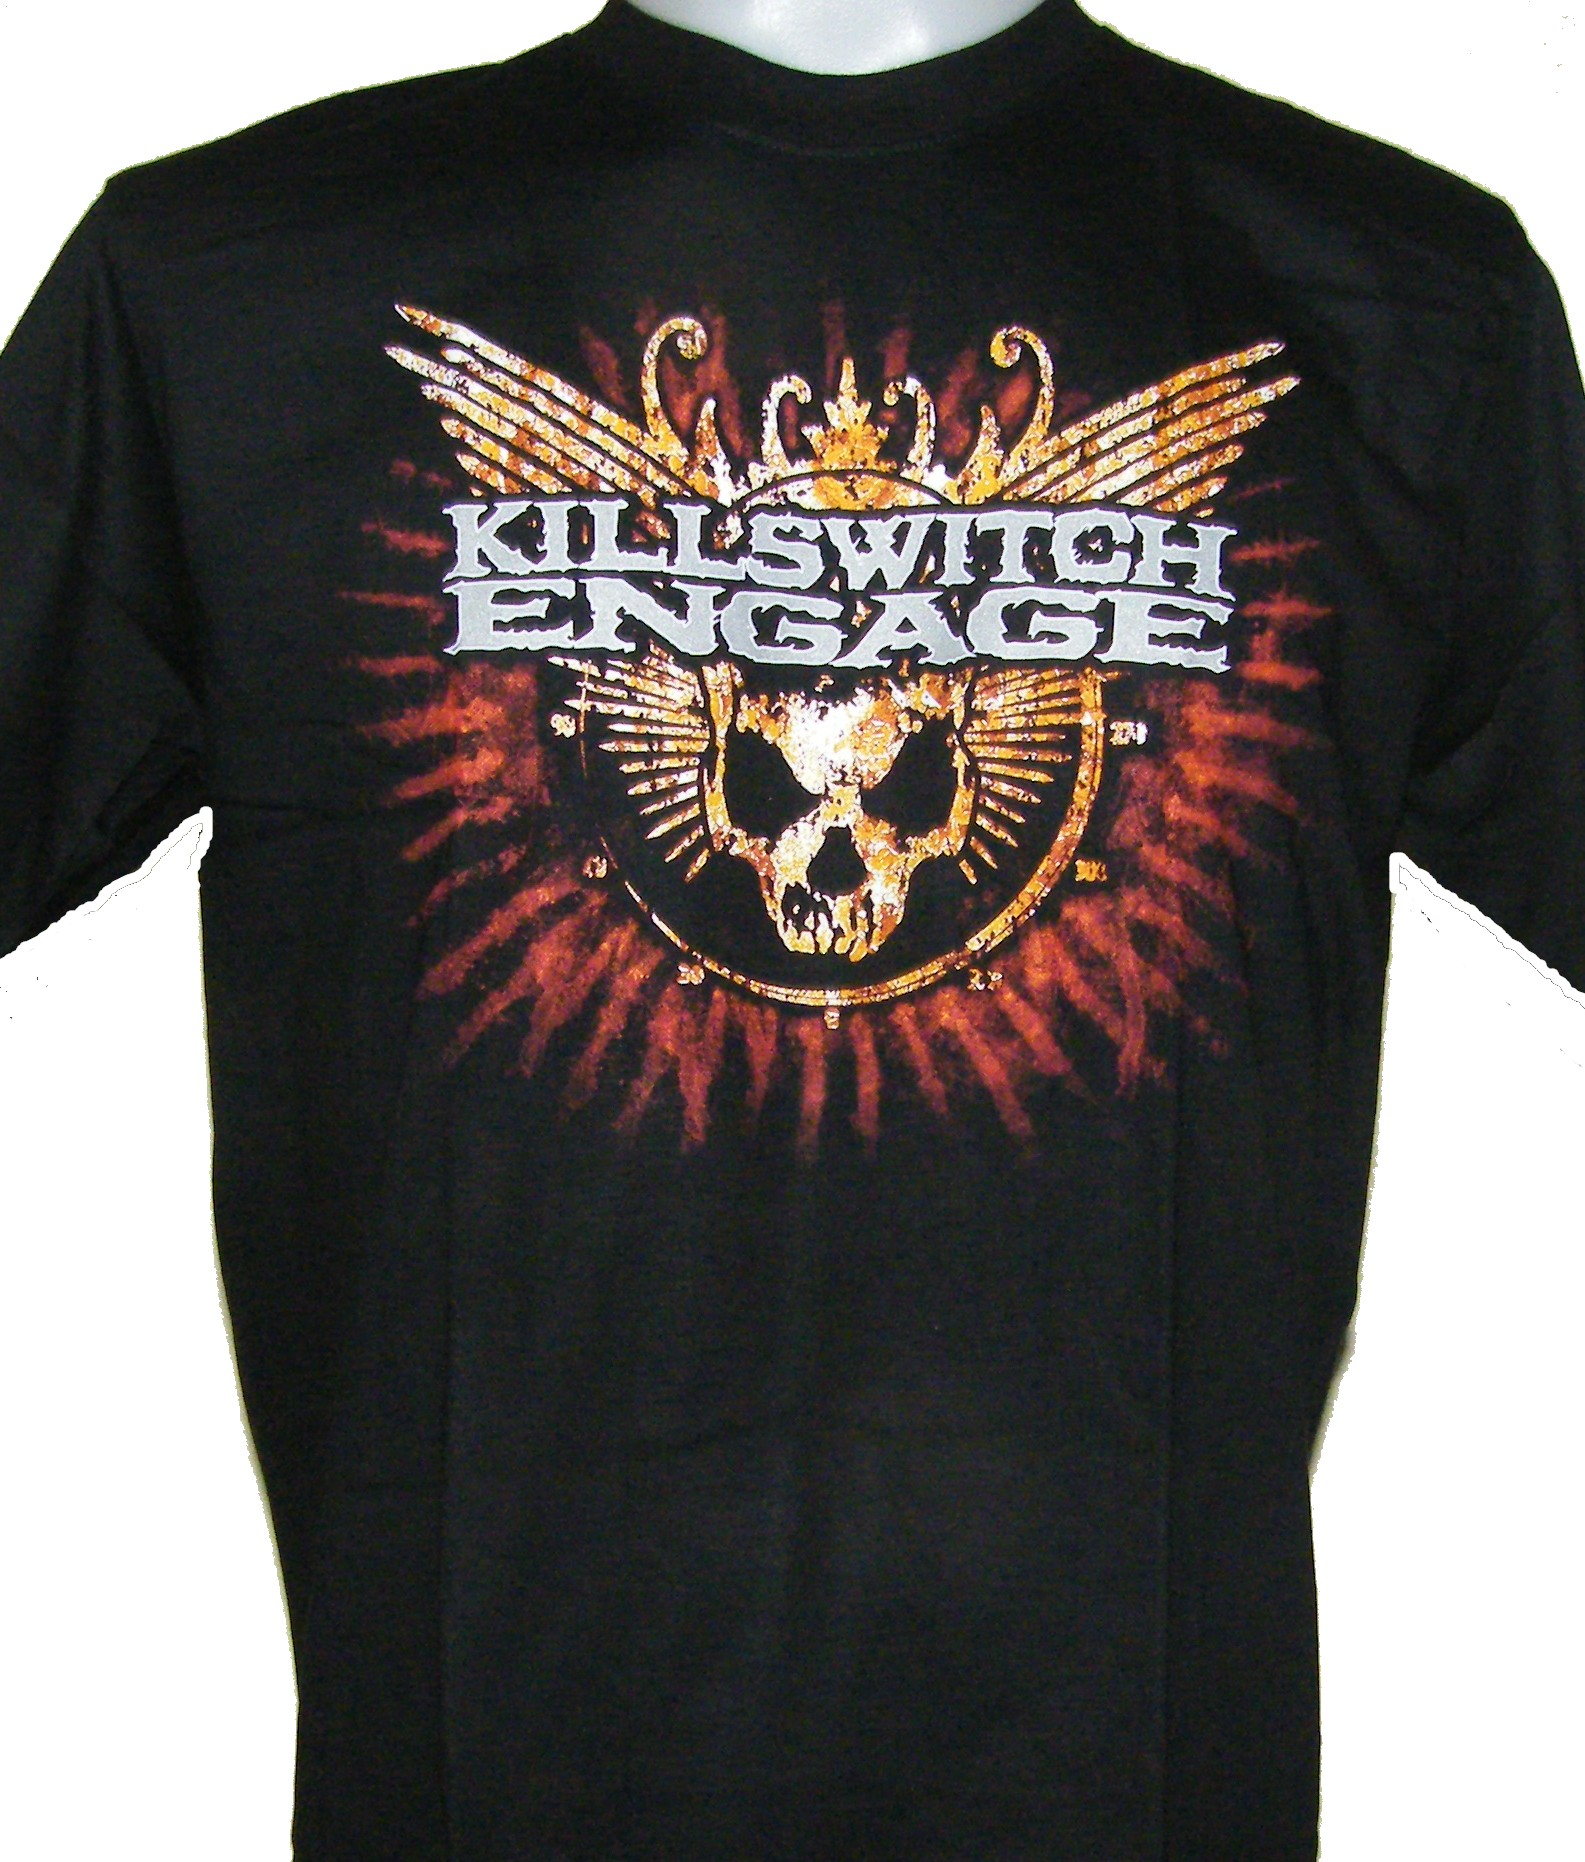 5460282b2 Killswitch Engage t-shirt size L